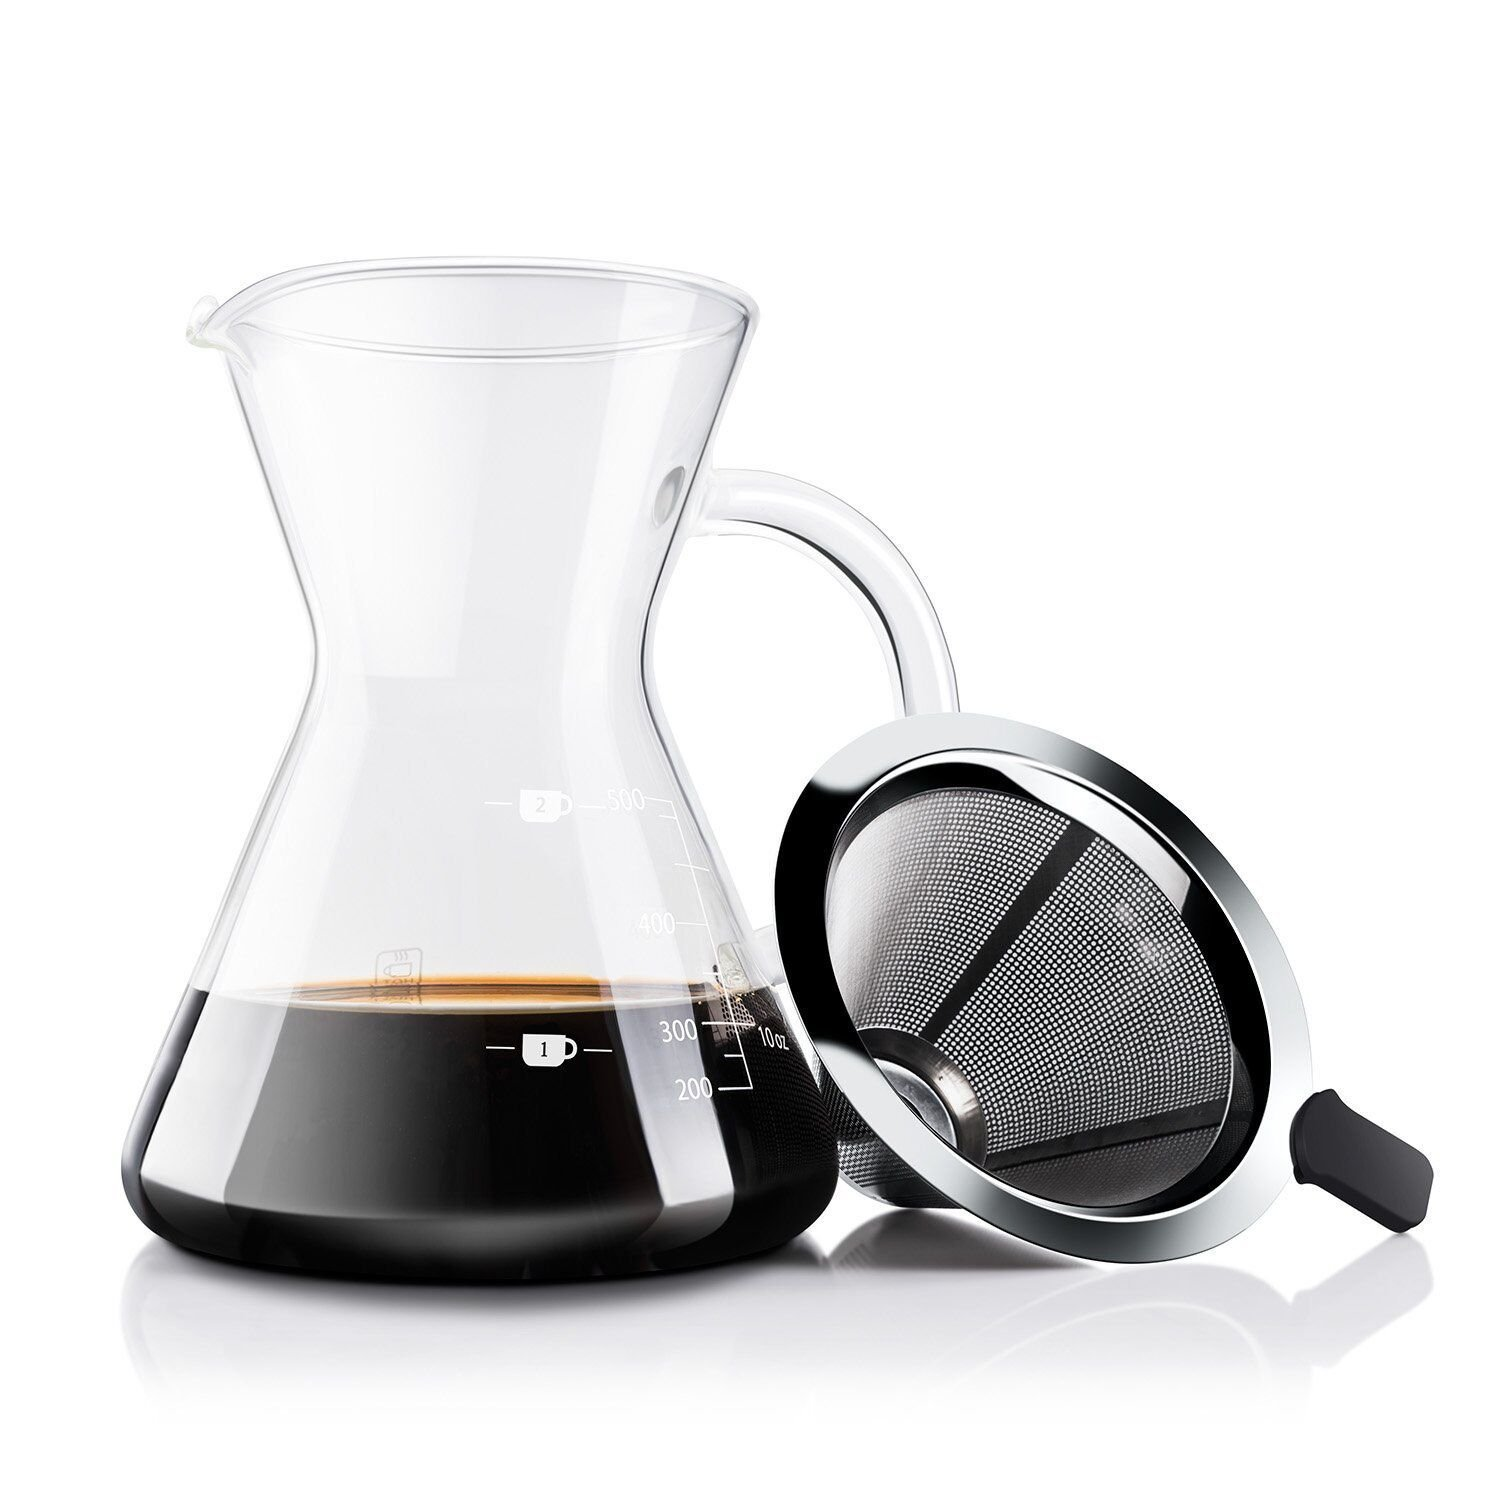 Own Sea 500ml Pour Over Coffee Maker - Borosilicate Glass Carafe with Handle and Reusable Double Layer Stainless Steel Cone Filter